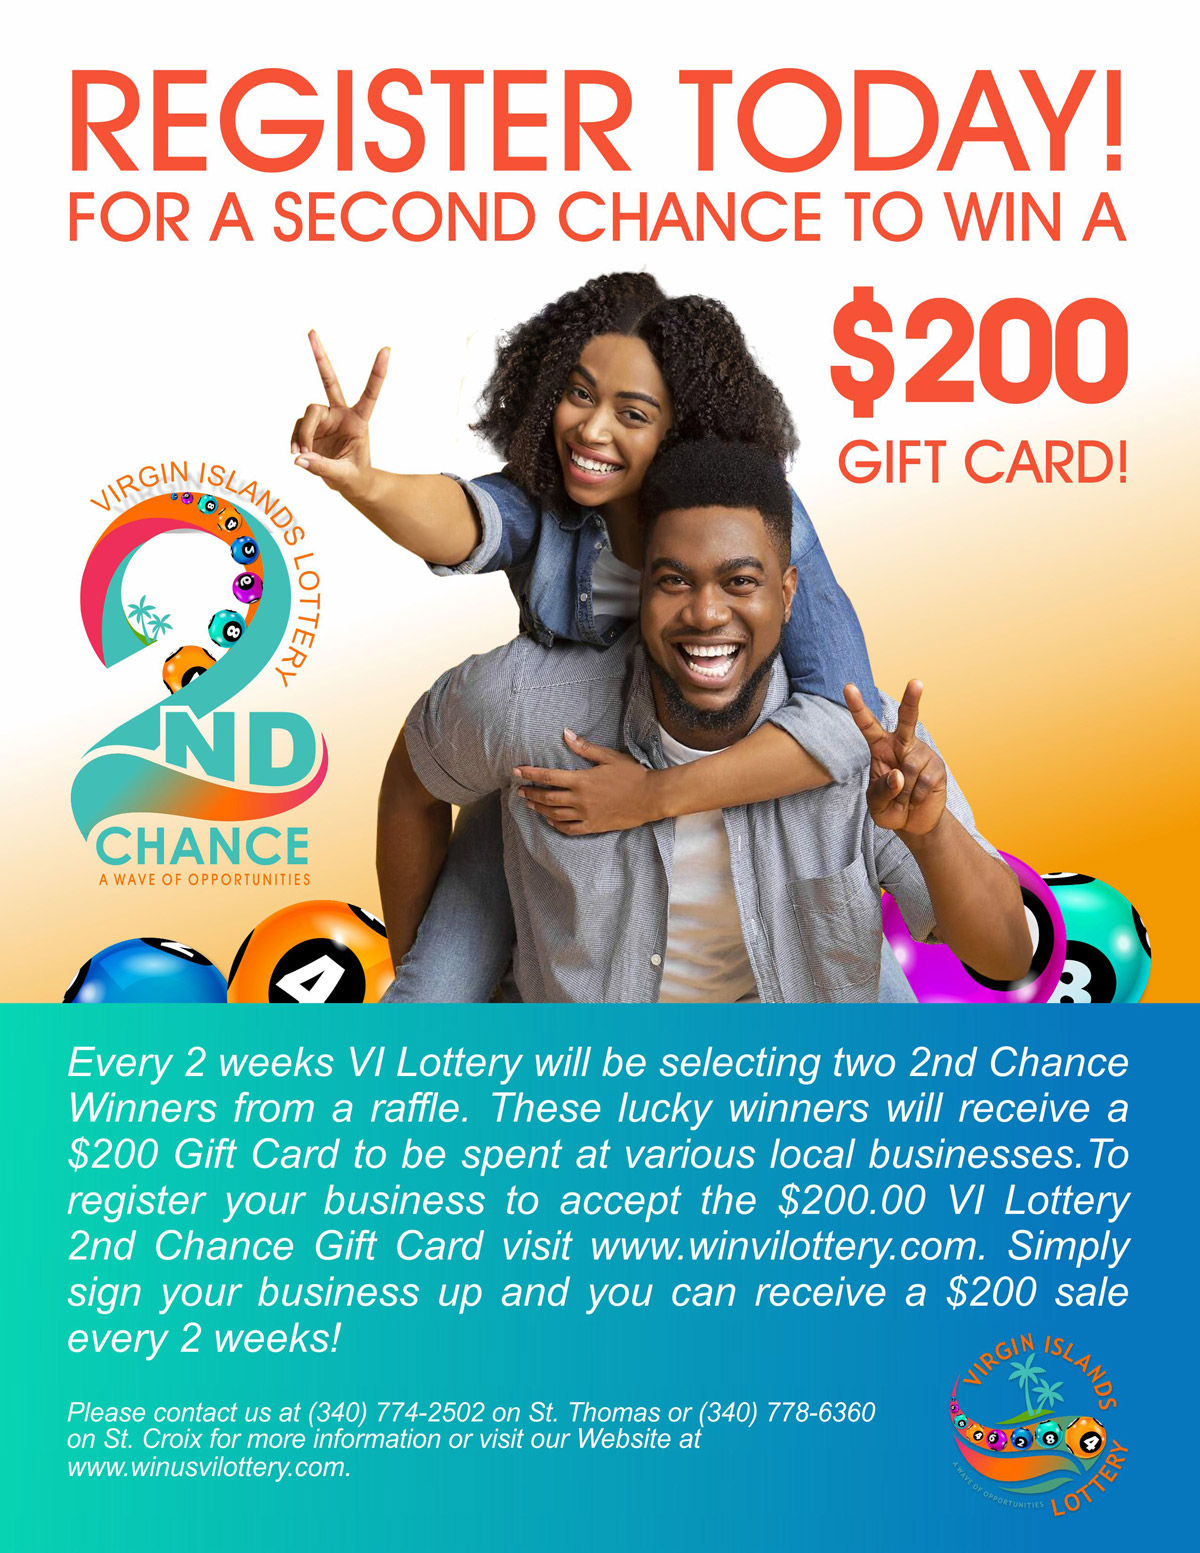 Business-Register-SECOND-CHANCE-Gift-Card